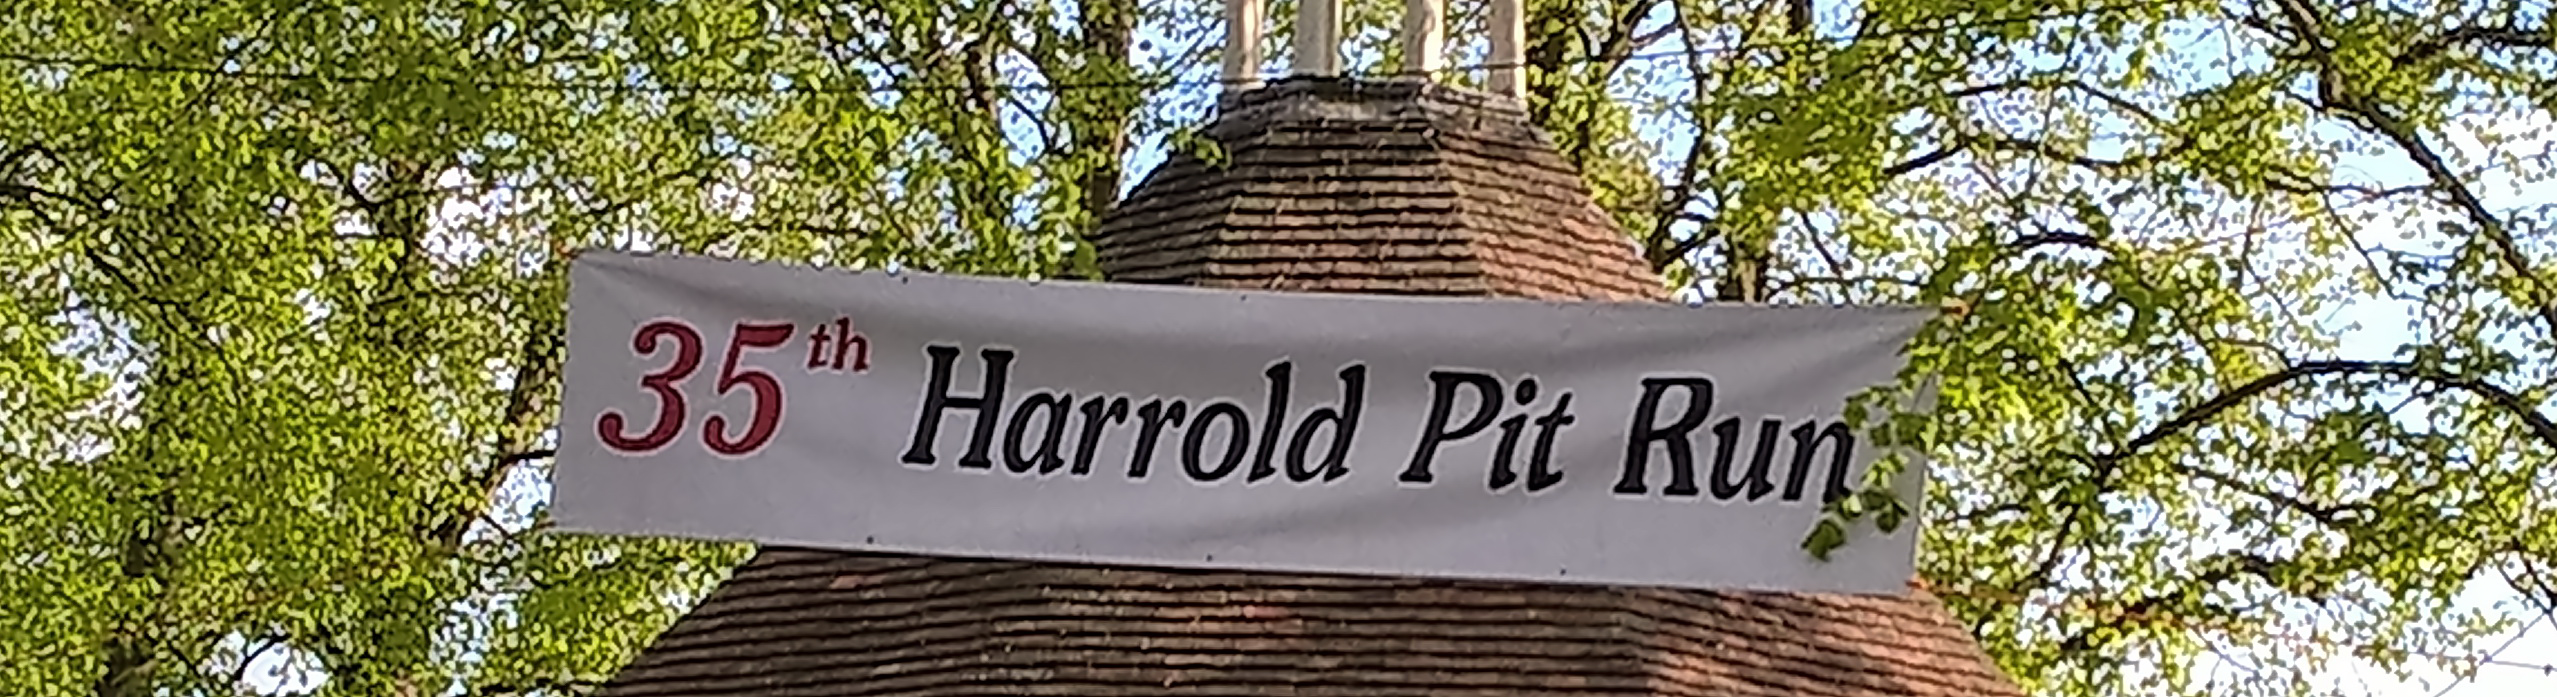 Harrold Pit Run 2017 : 29rd April 2017            Contact :  harroldpitrun@gmail.com Logo